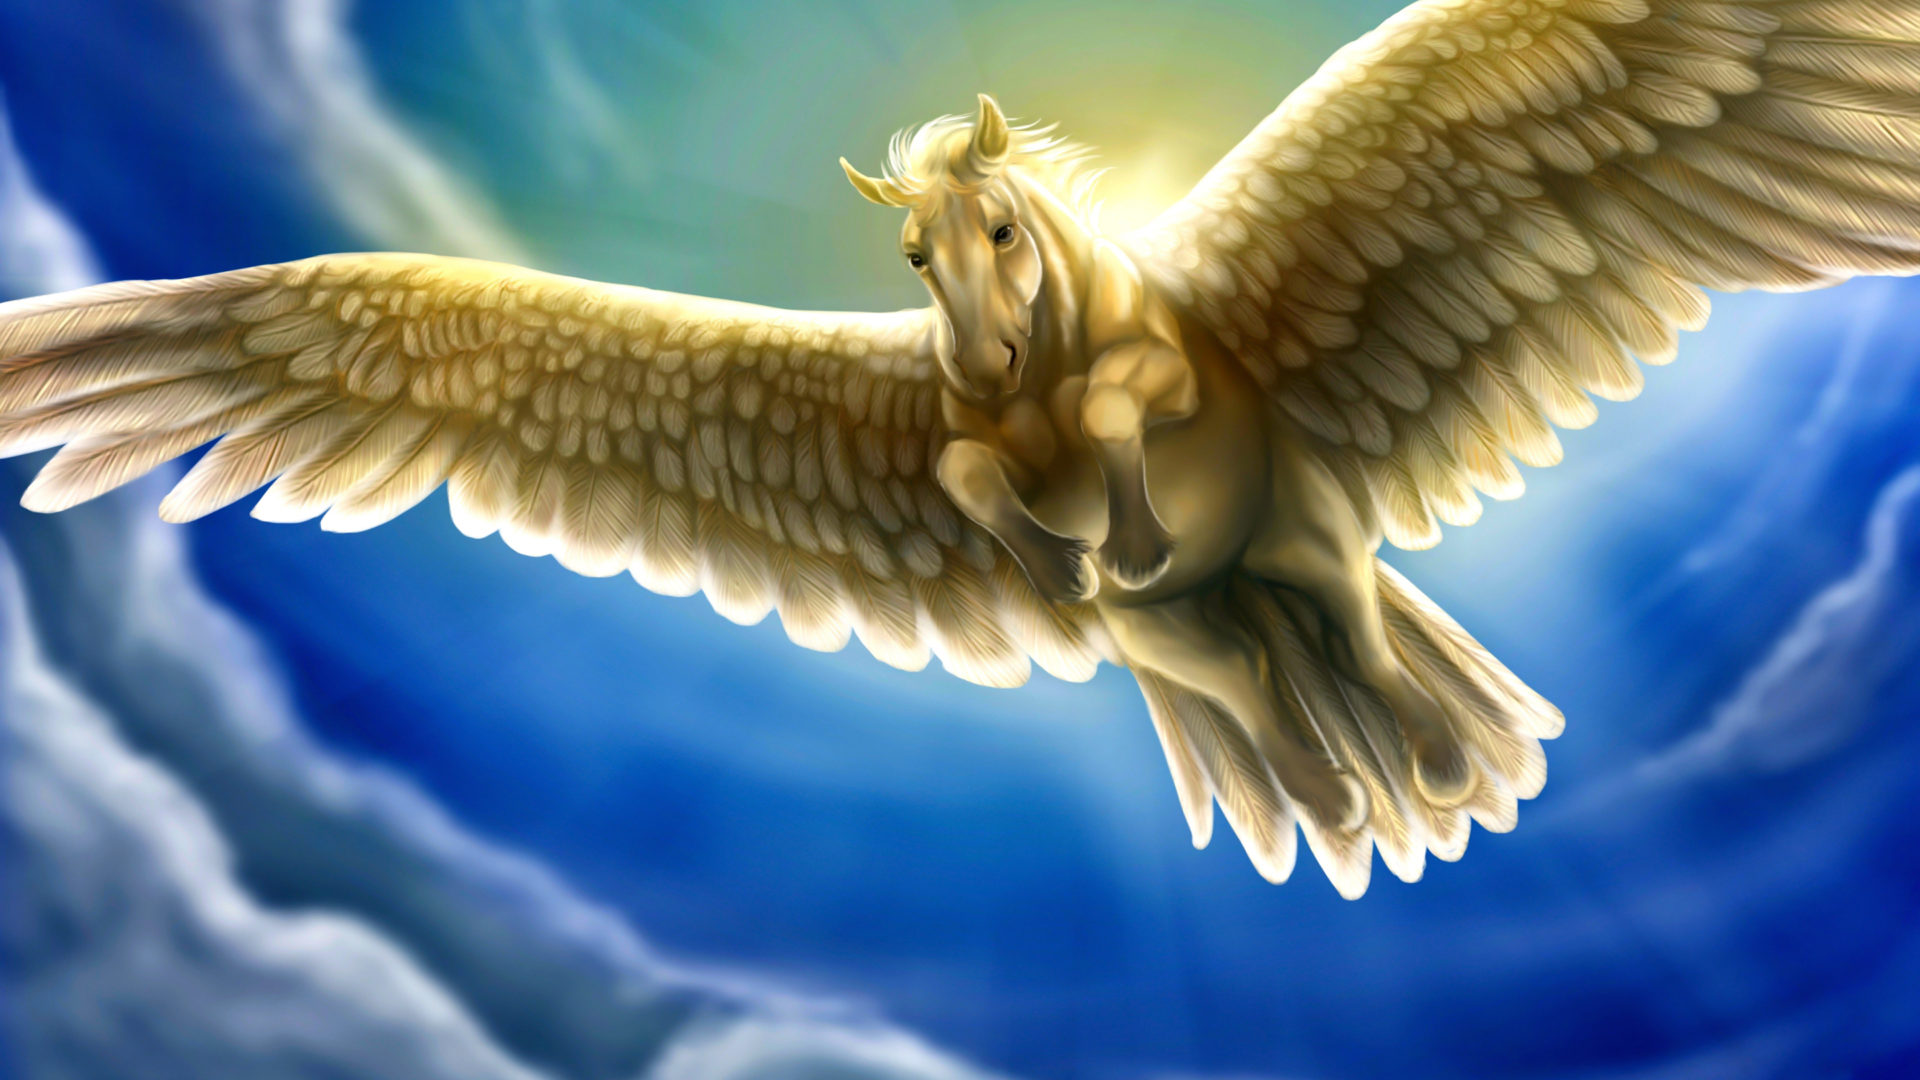 Running Horse 3d Wallpaper Heavenly White Horse With Wings Pegasus Fantasy Sky Blue